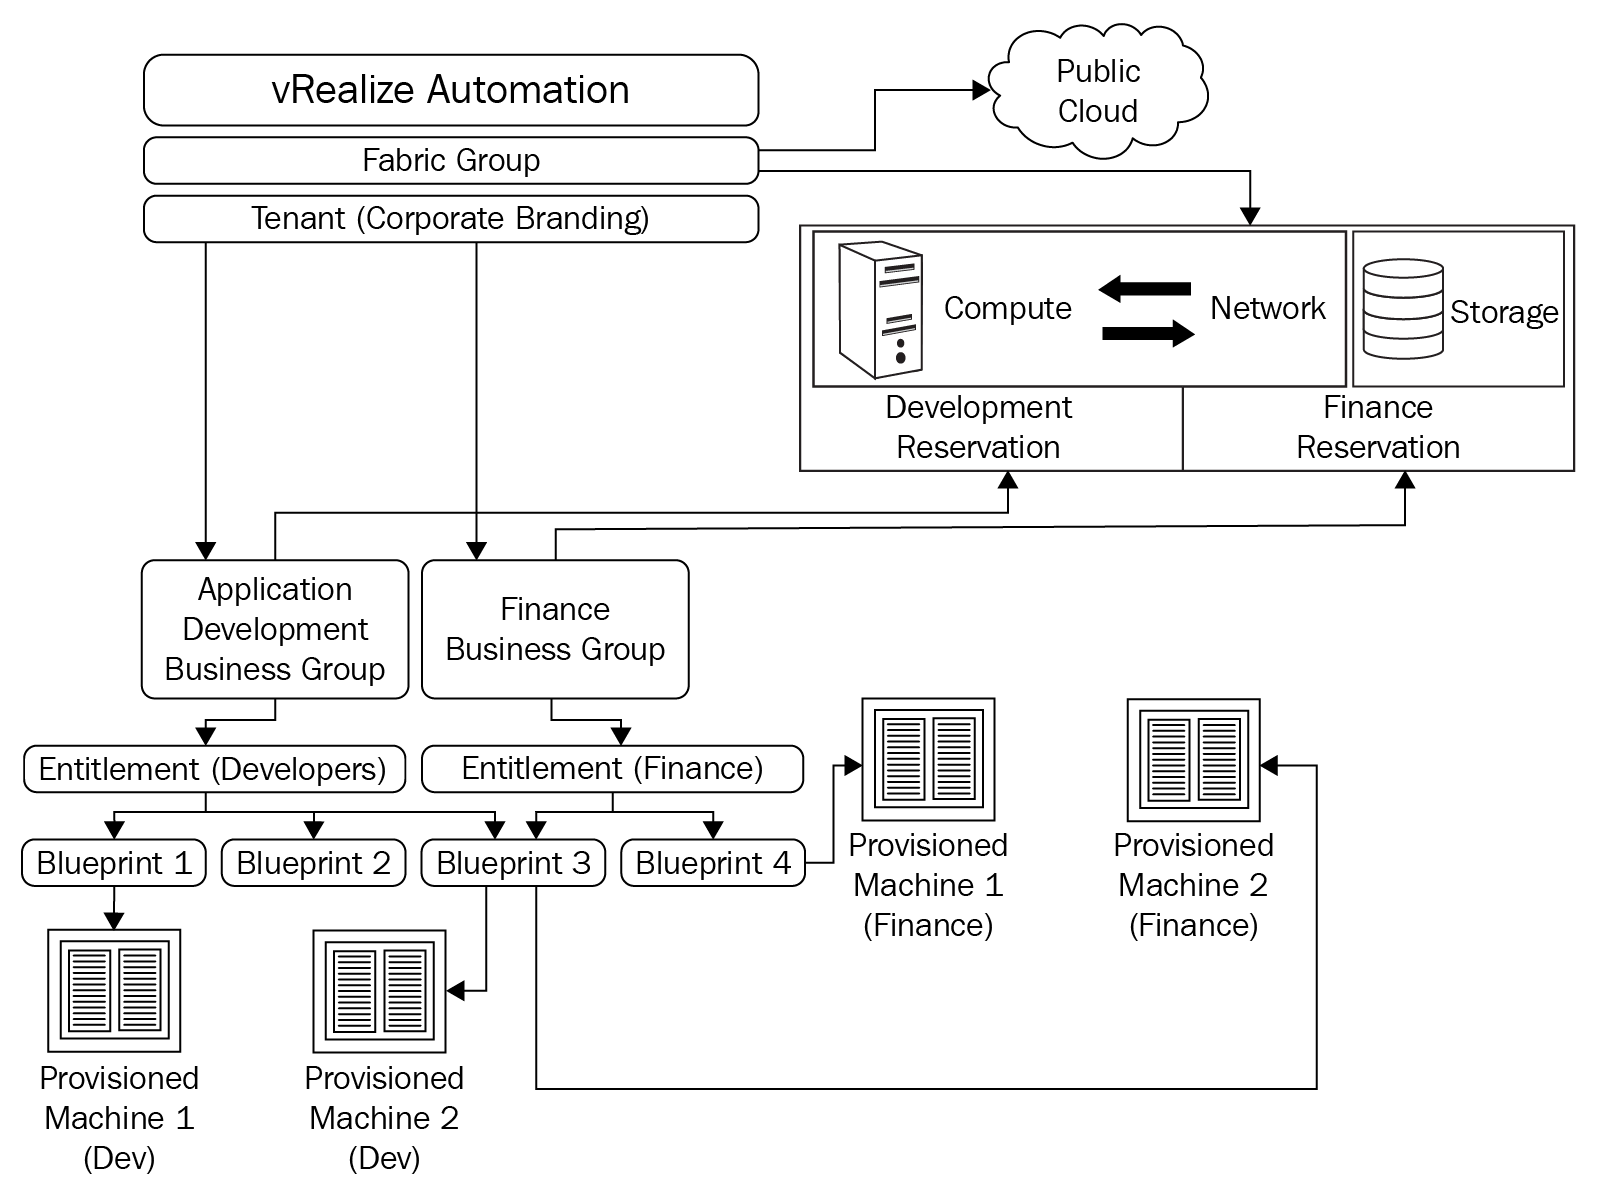 Integrated architecture design for virtual machines and